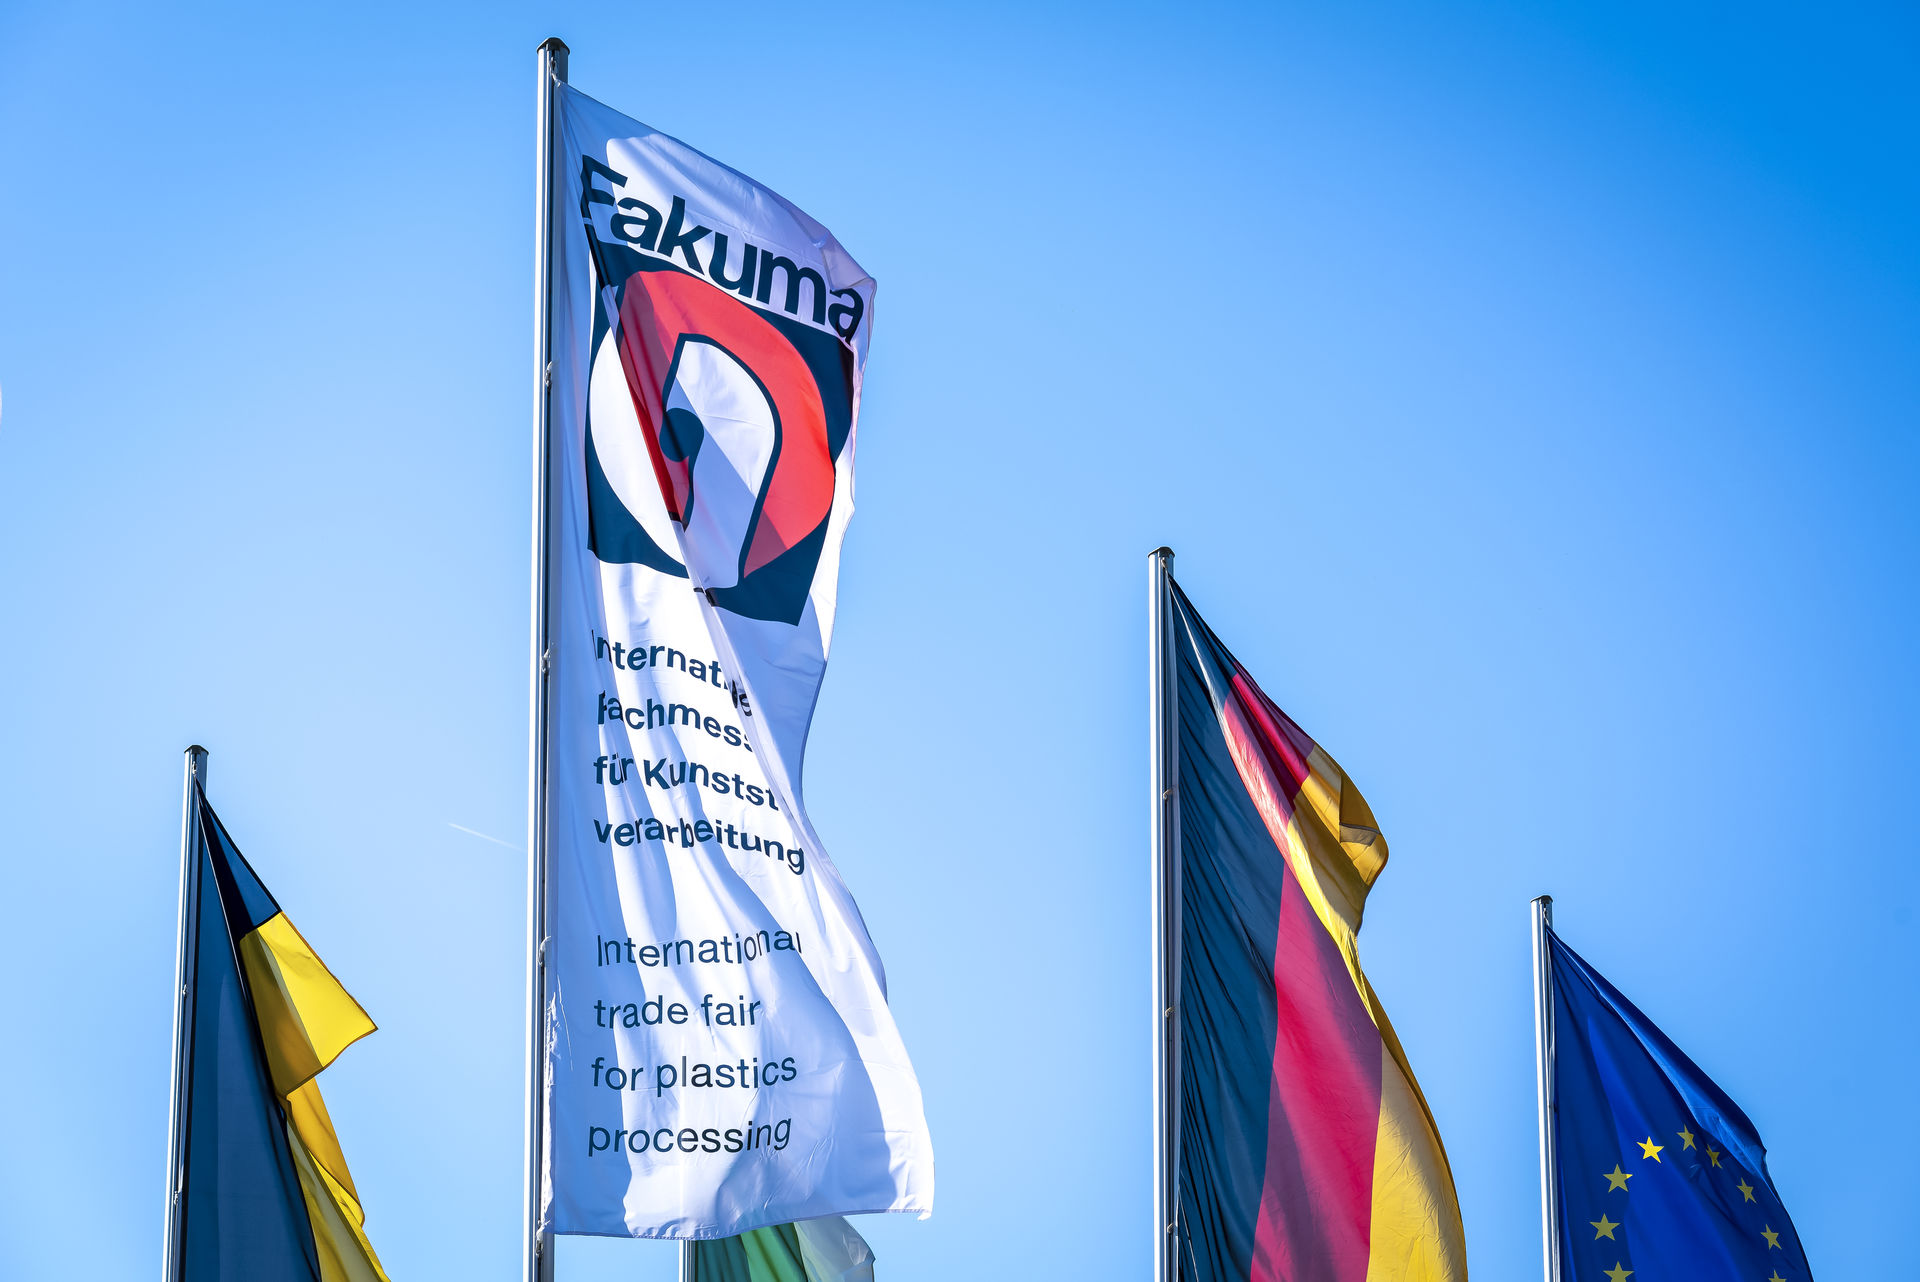 The next Fakuma will take place from 12 – 16 October 2021 in Friedrichshafen, Germany. (Source: P. E. Schall)